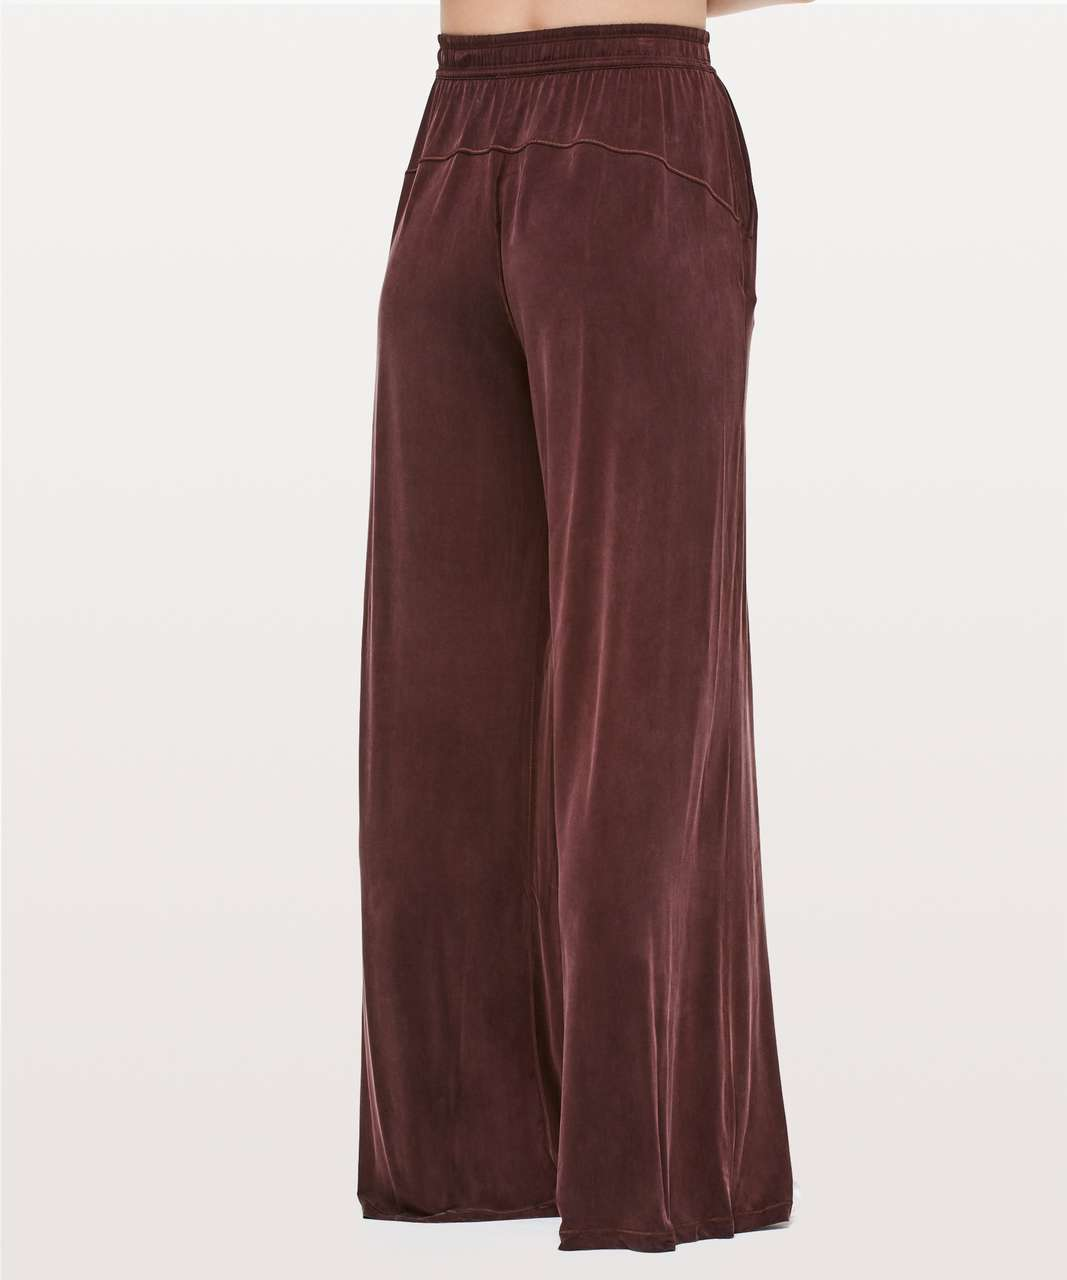 "Lululemon Principal Dancer Pant *32"" - Midnight Maroon"